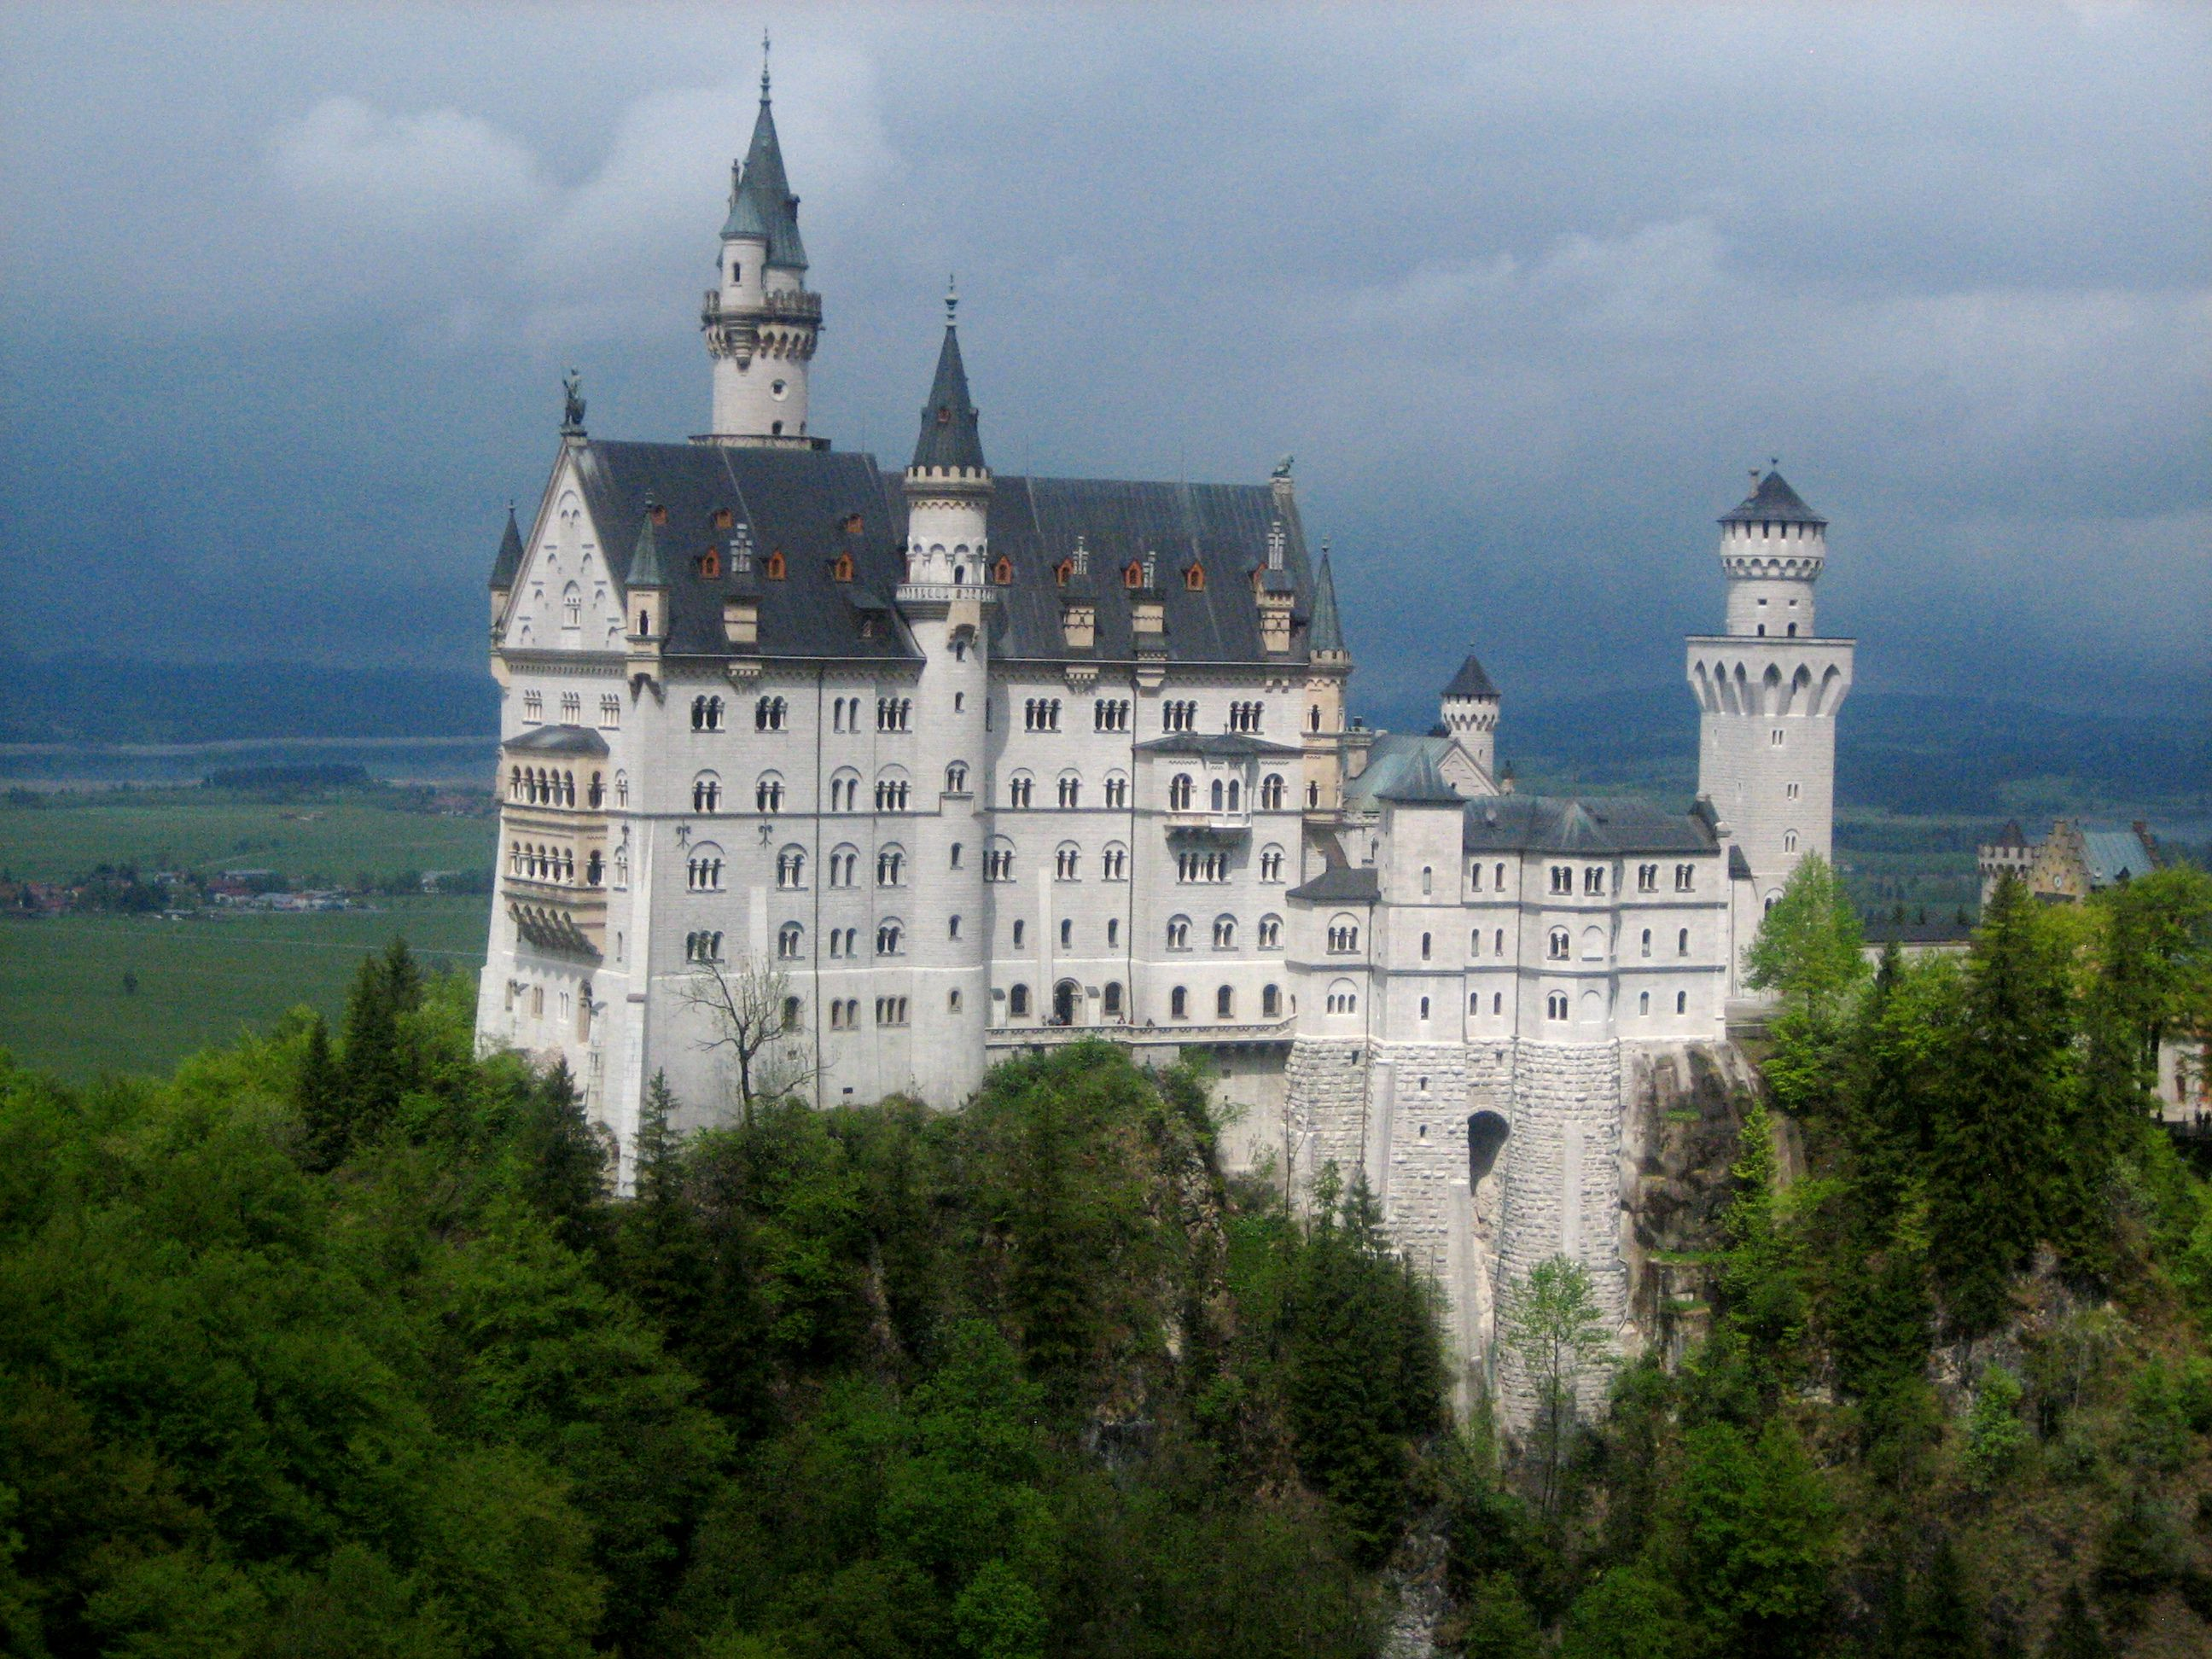 Schloss Neuschwanstein In Fussen Germany Disney Modeled His Cinderella S Castle After This Castle Neuschwanstein Castle Castle European Destination